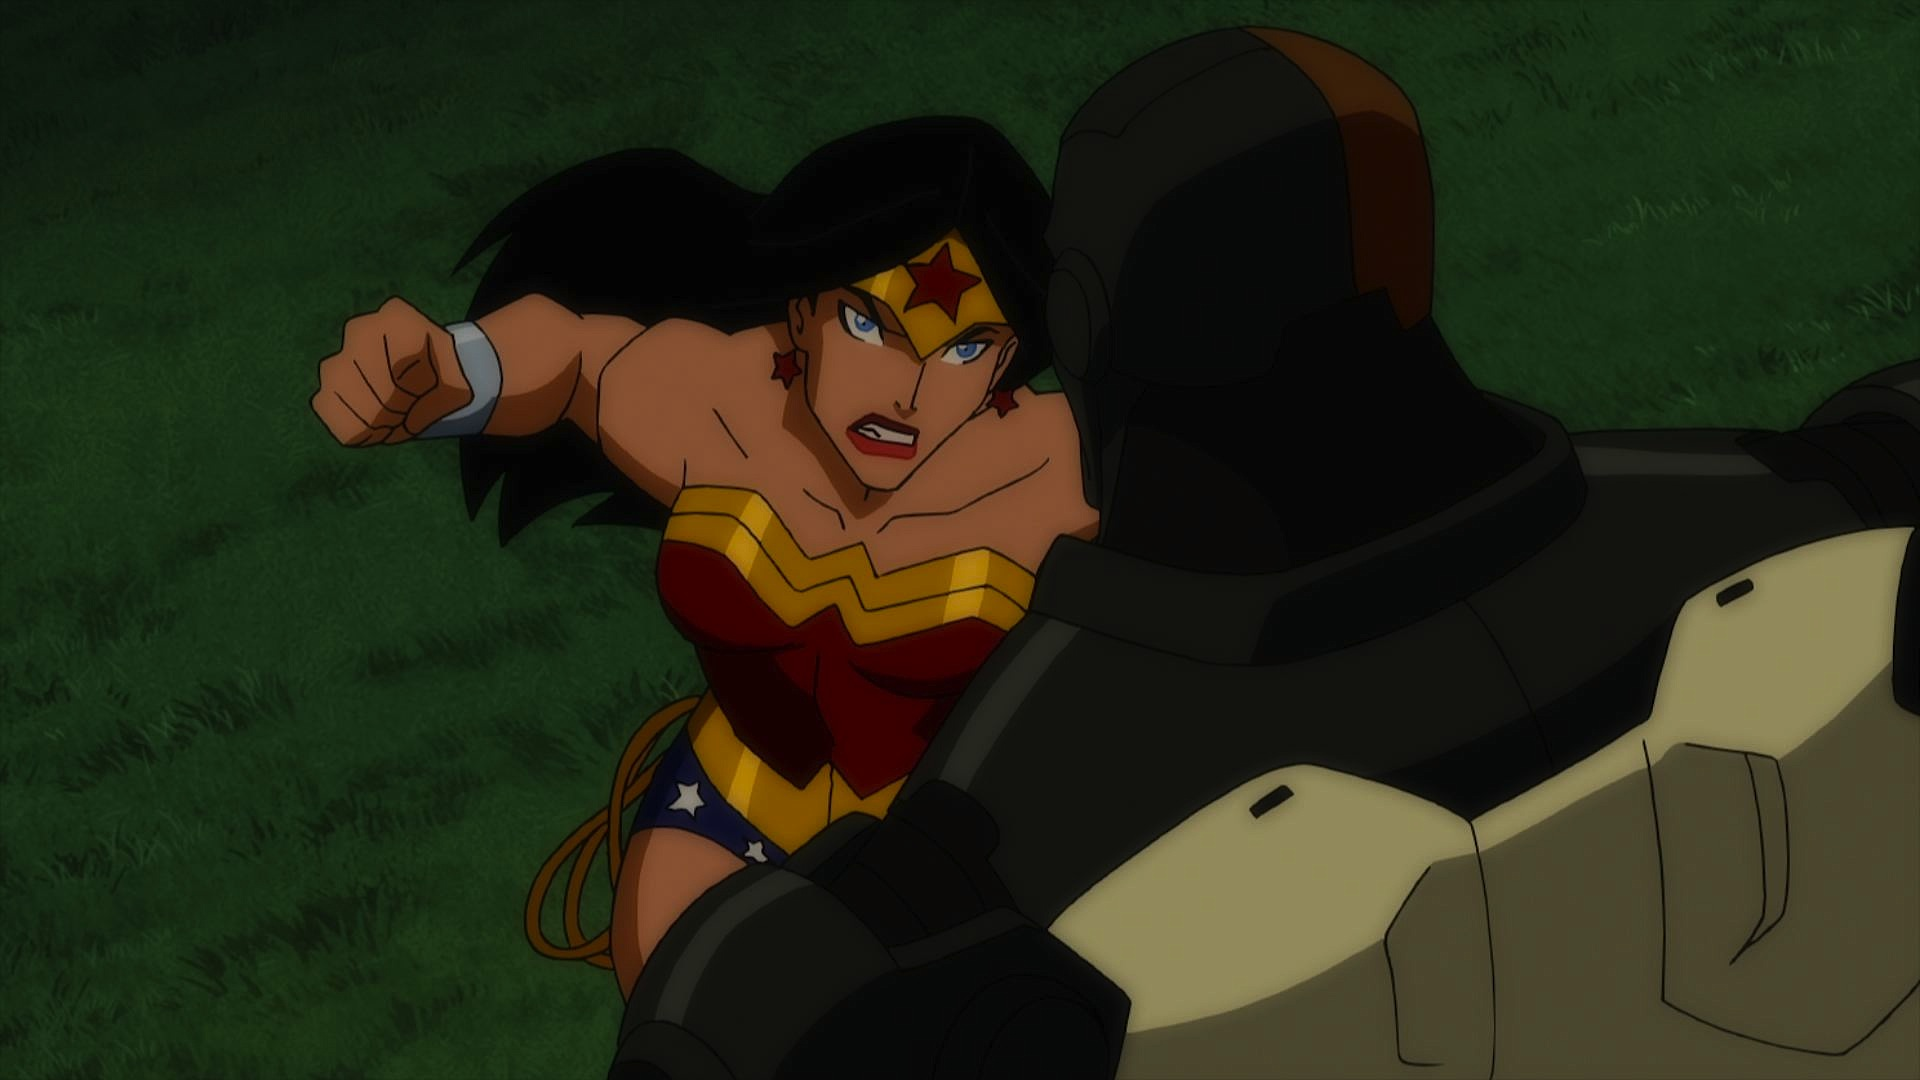 Wonder Woman Beaten Justice League Susan Eisenberg...